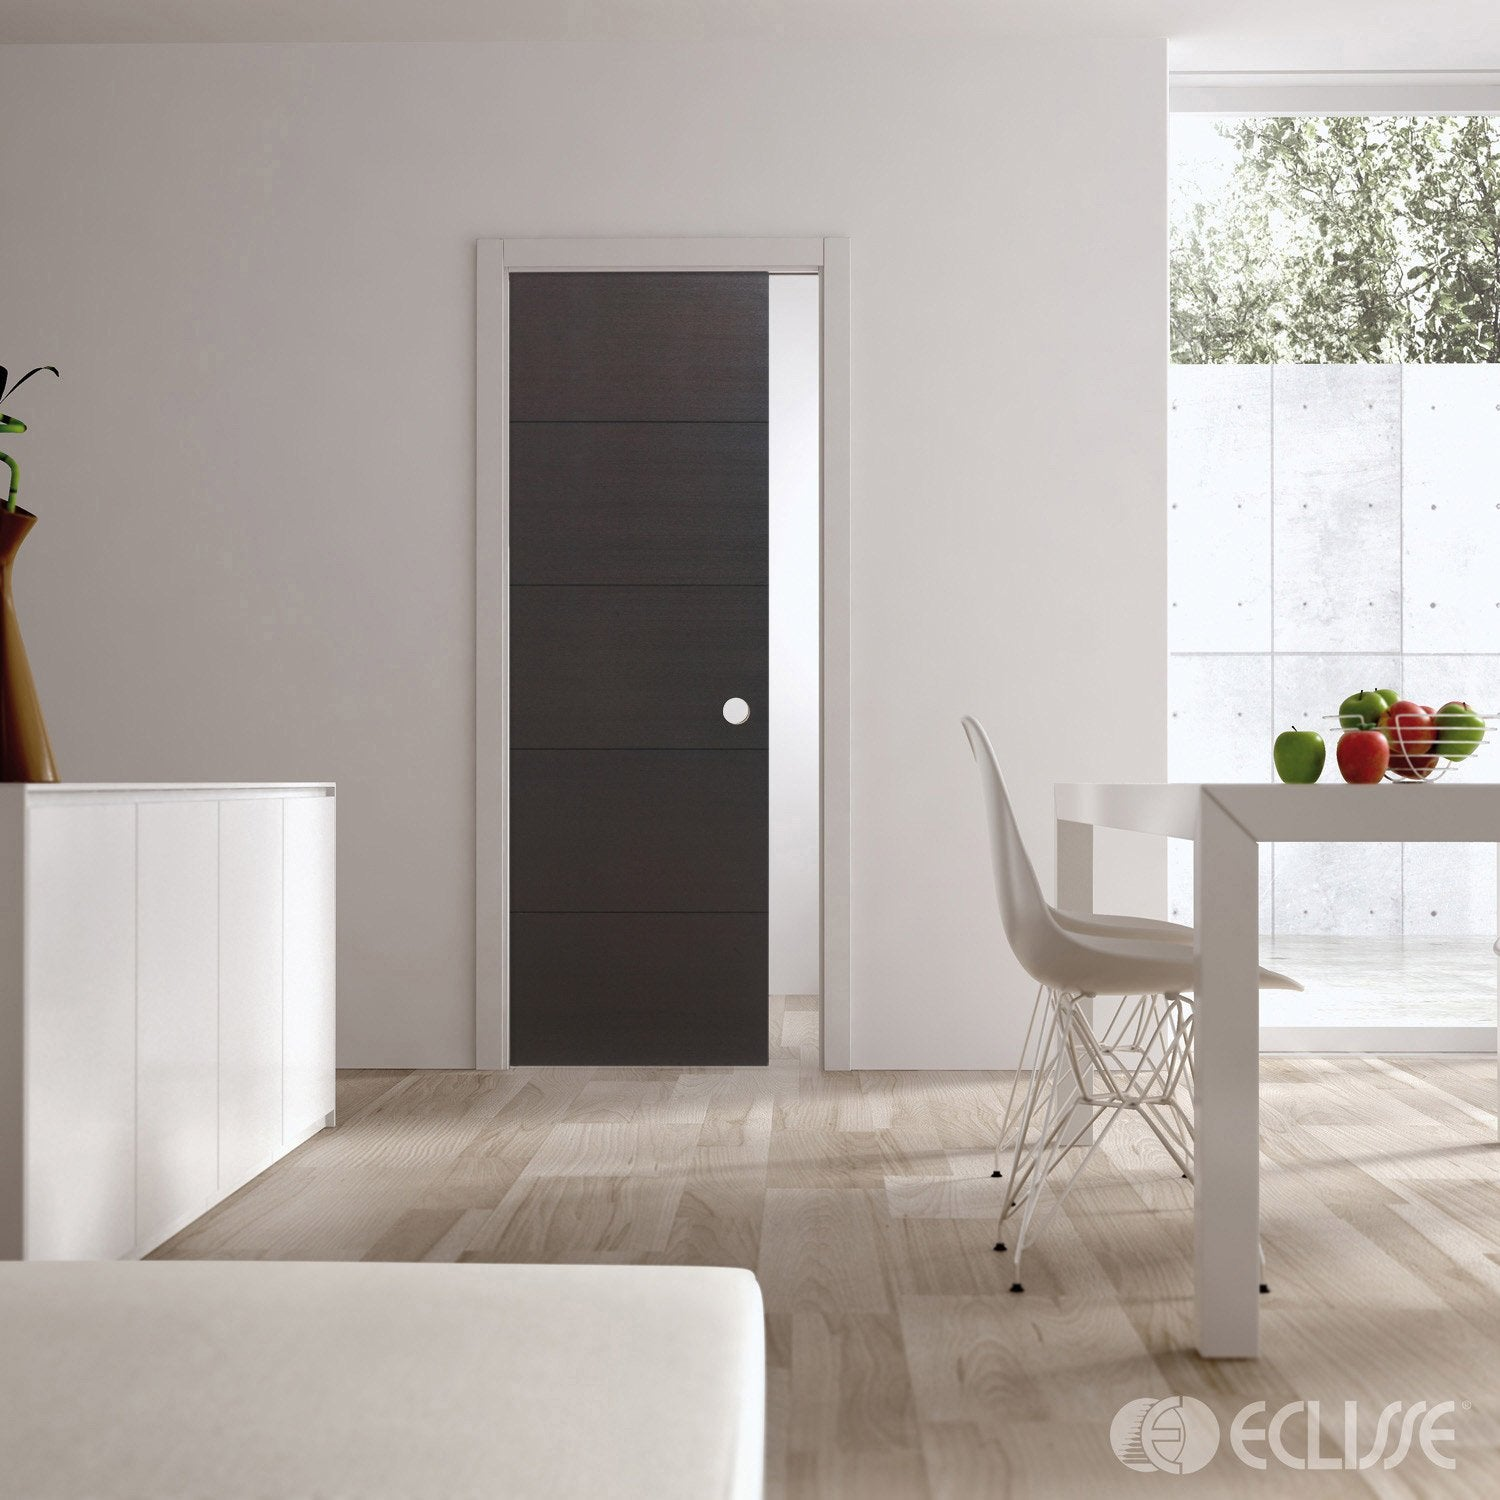 ensemble porte coulissante tokyo weng avec galandage. Black Bedroom Furniture Sets. Home Design Ideas